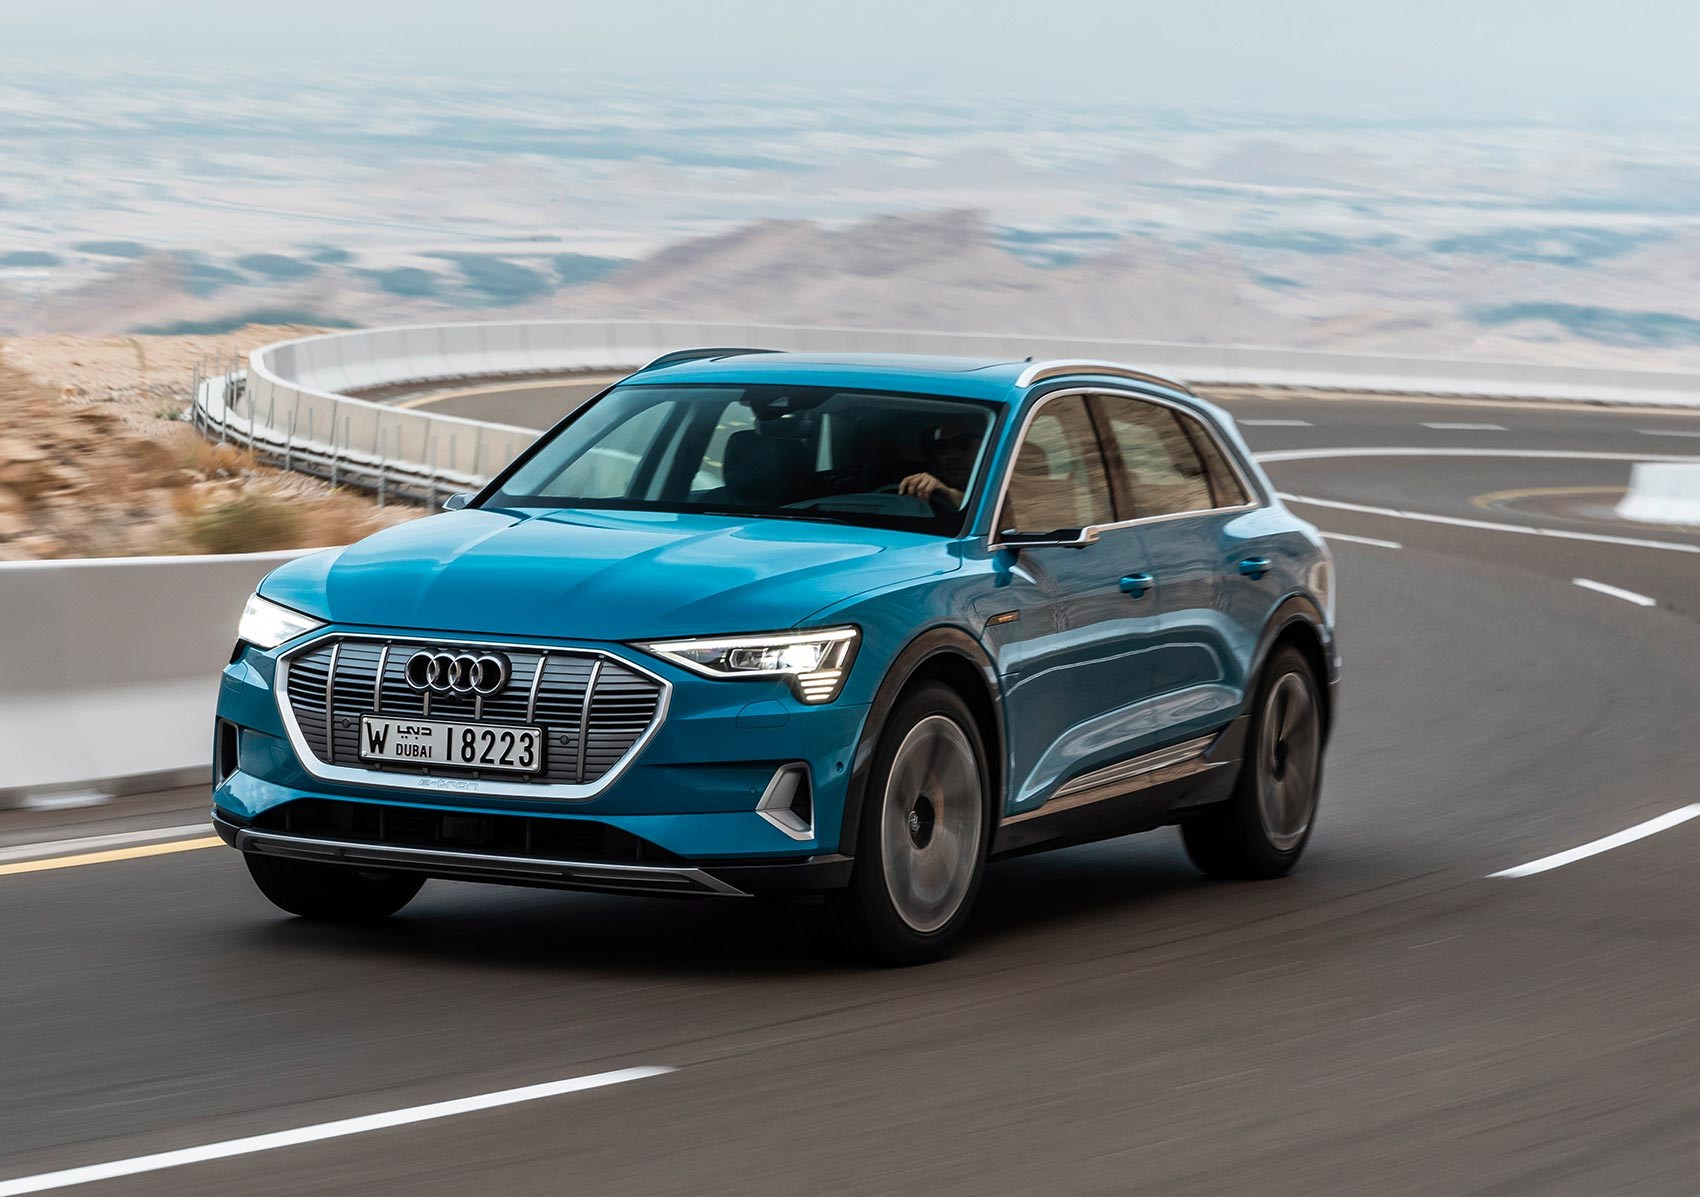 Used Audi Q5 For Sale >> Audi e-Tron review | CAR Magazine